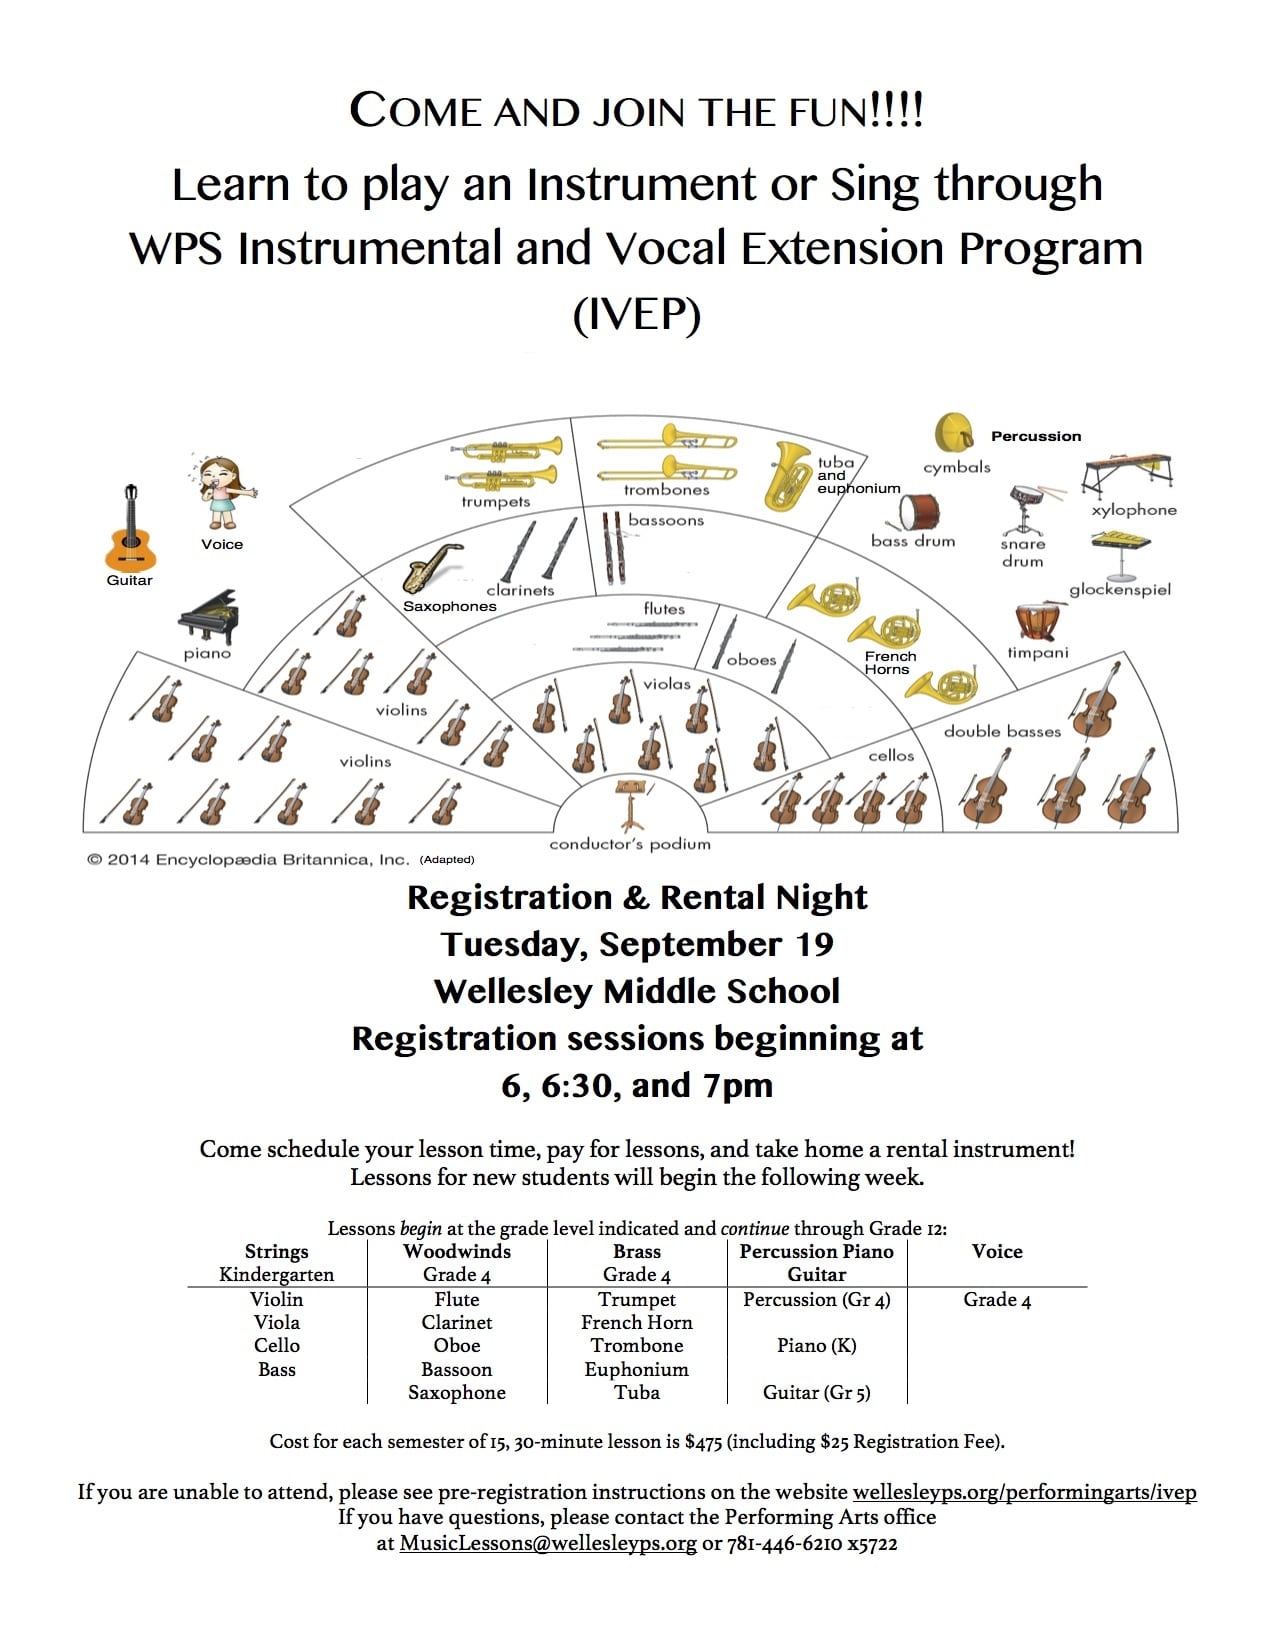 Wellesley Instruemental/Vocal sign-ups